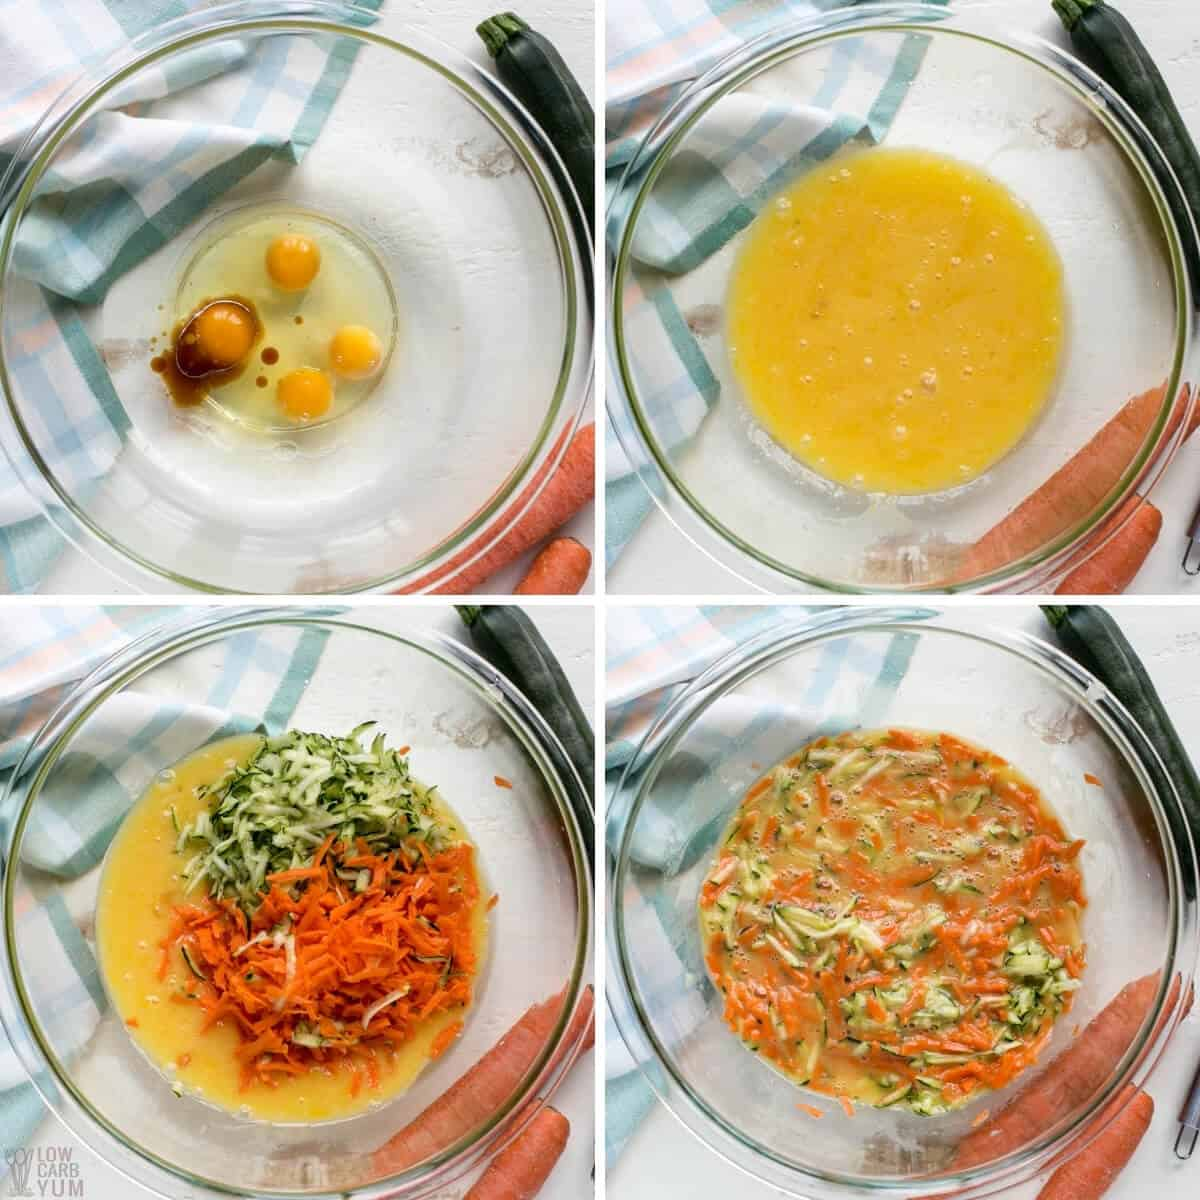 carrot and zucchini egg mixture for batter